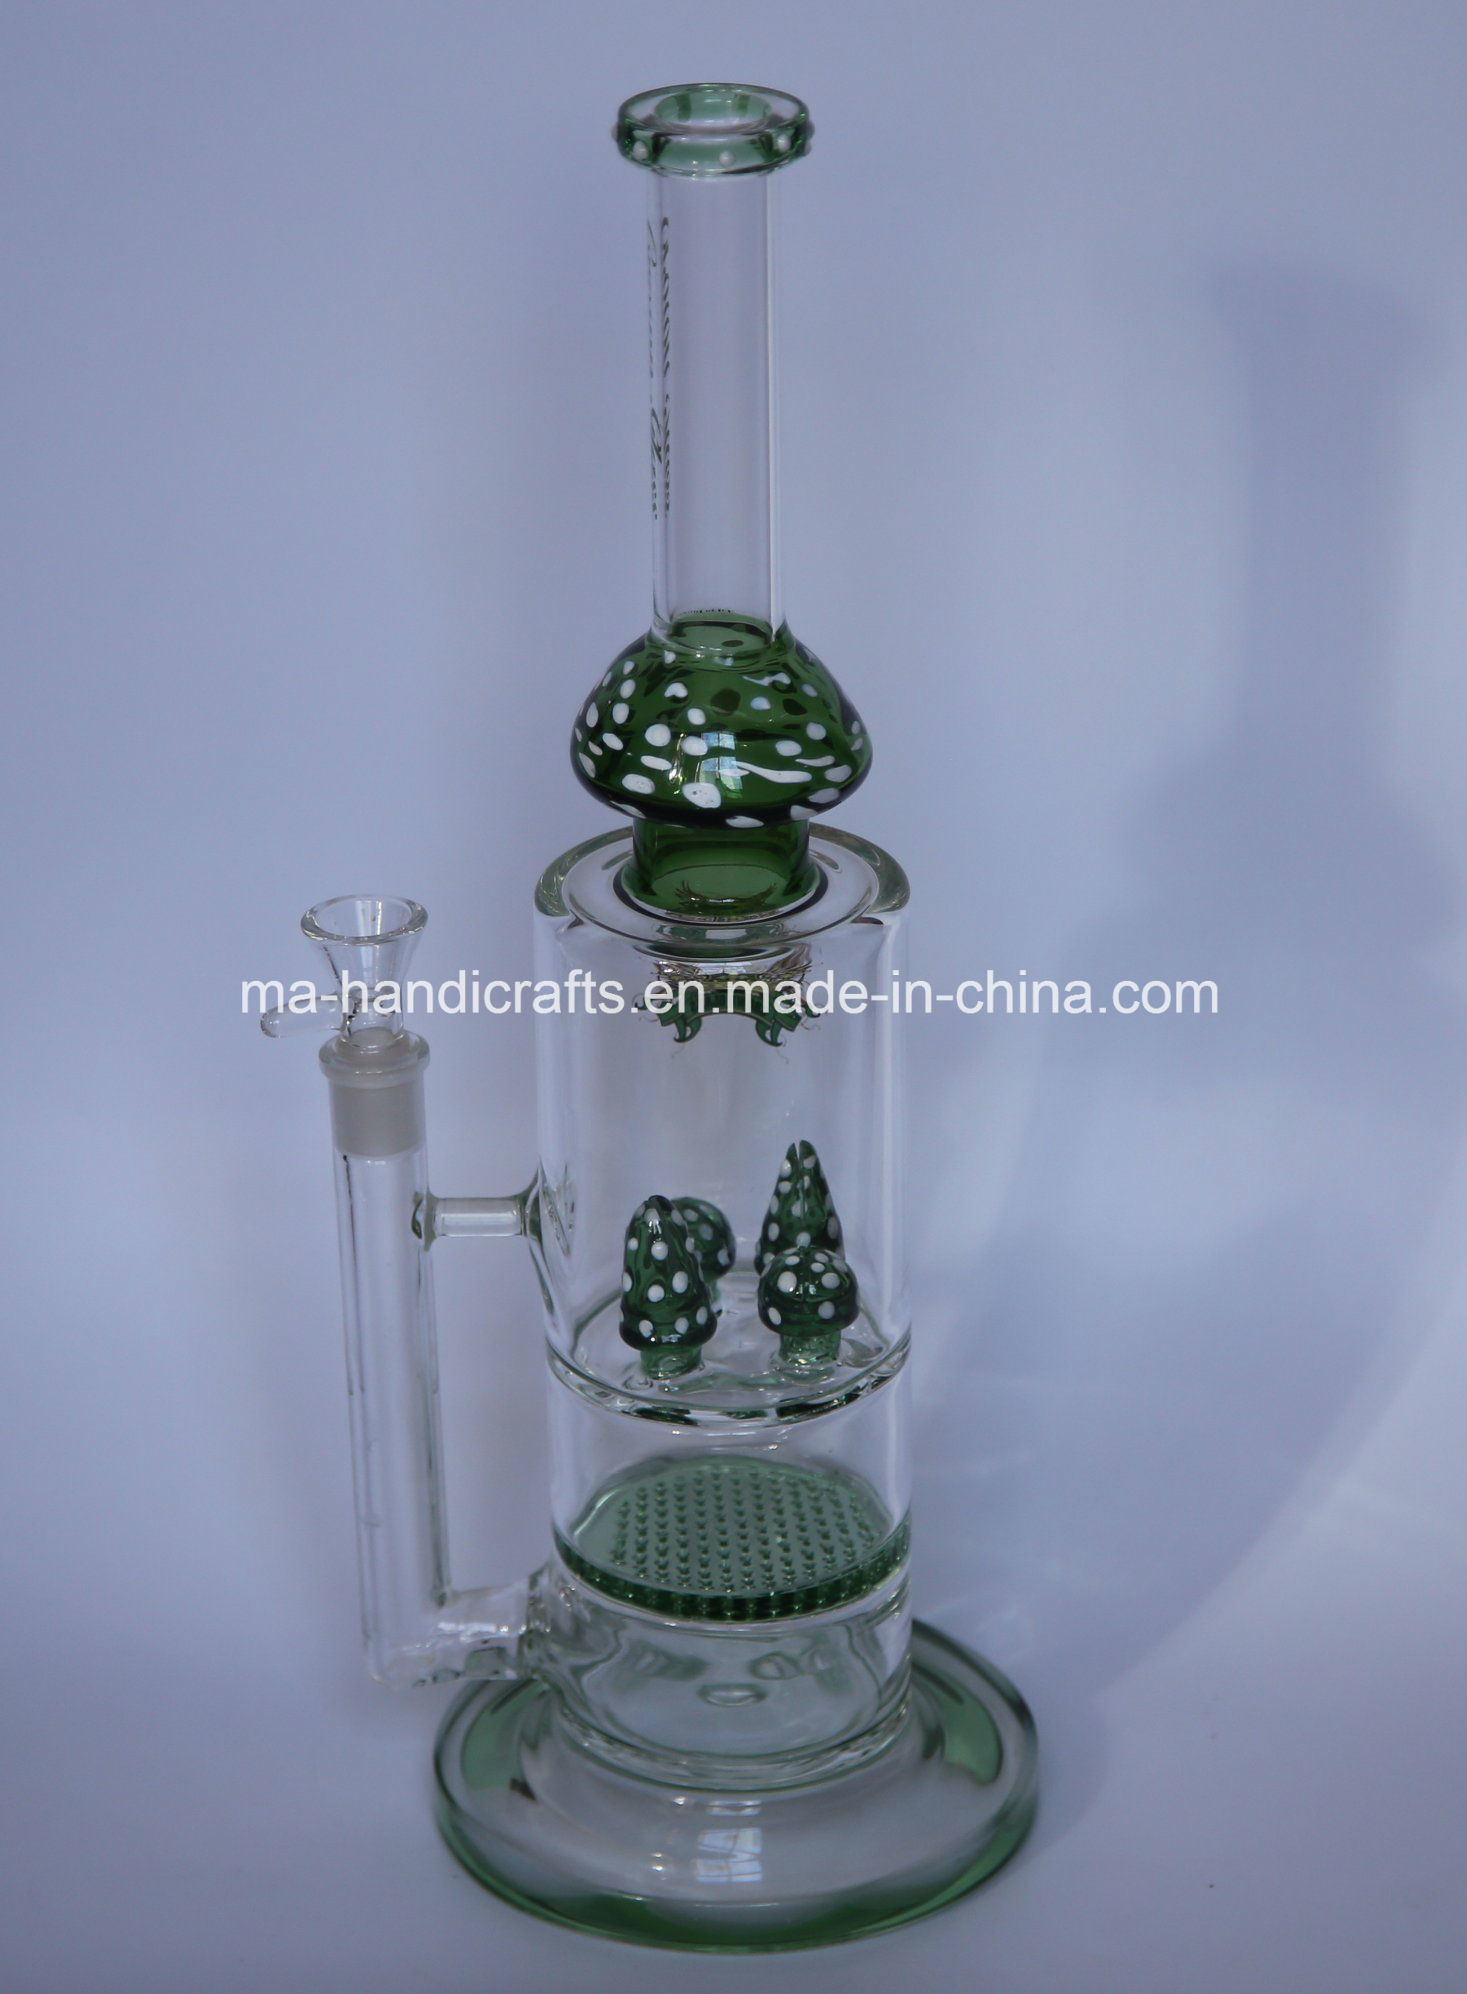 Green Mushroom Smoking Water Pipes with Honey Comb Percs